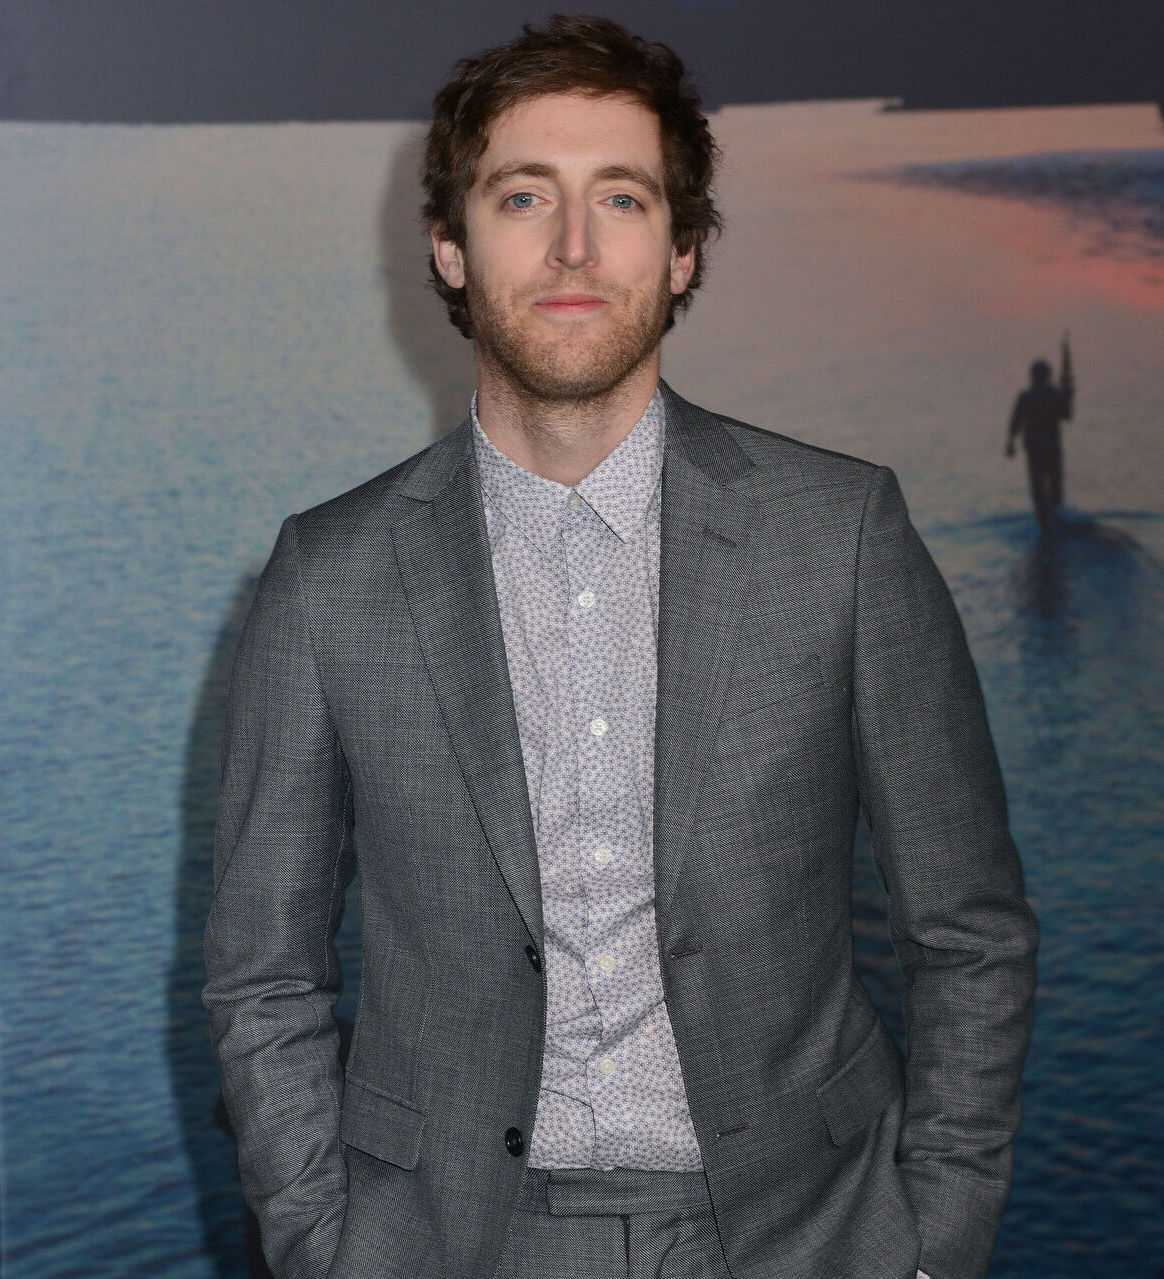 Thomas Middleditch Famous For